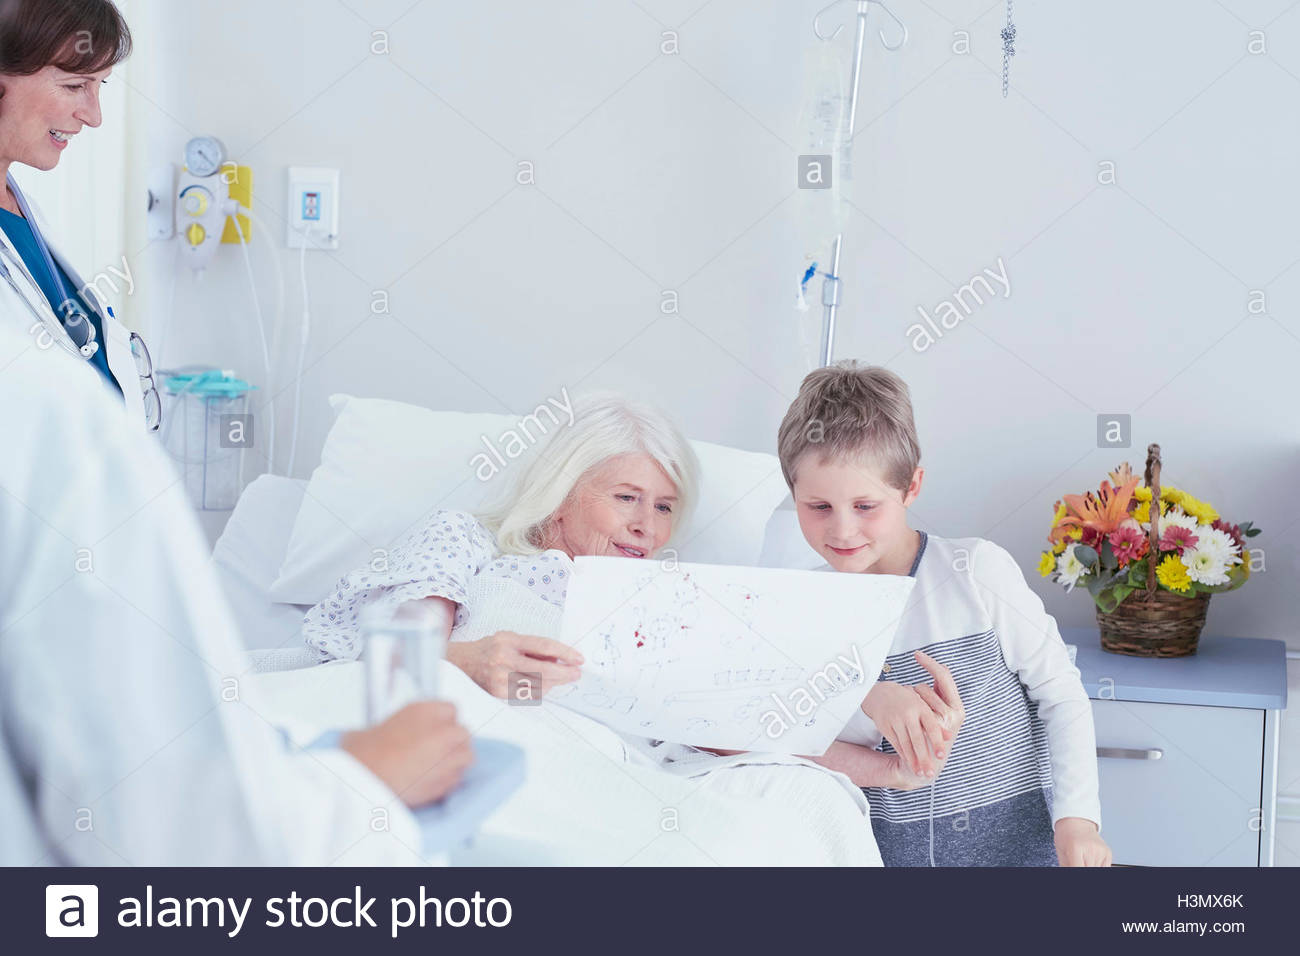 1300x956 Senior Female Patient In Hospital Bed Looking